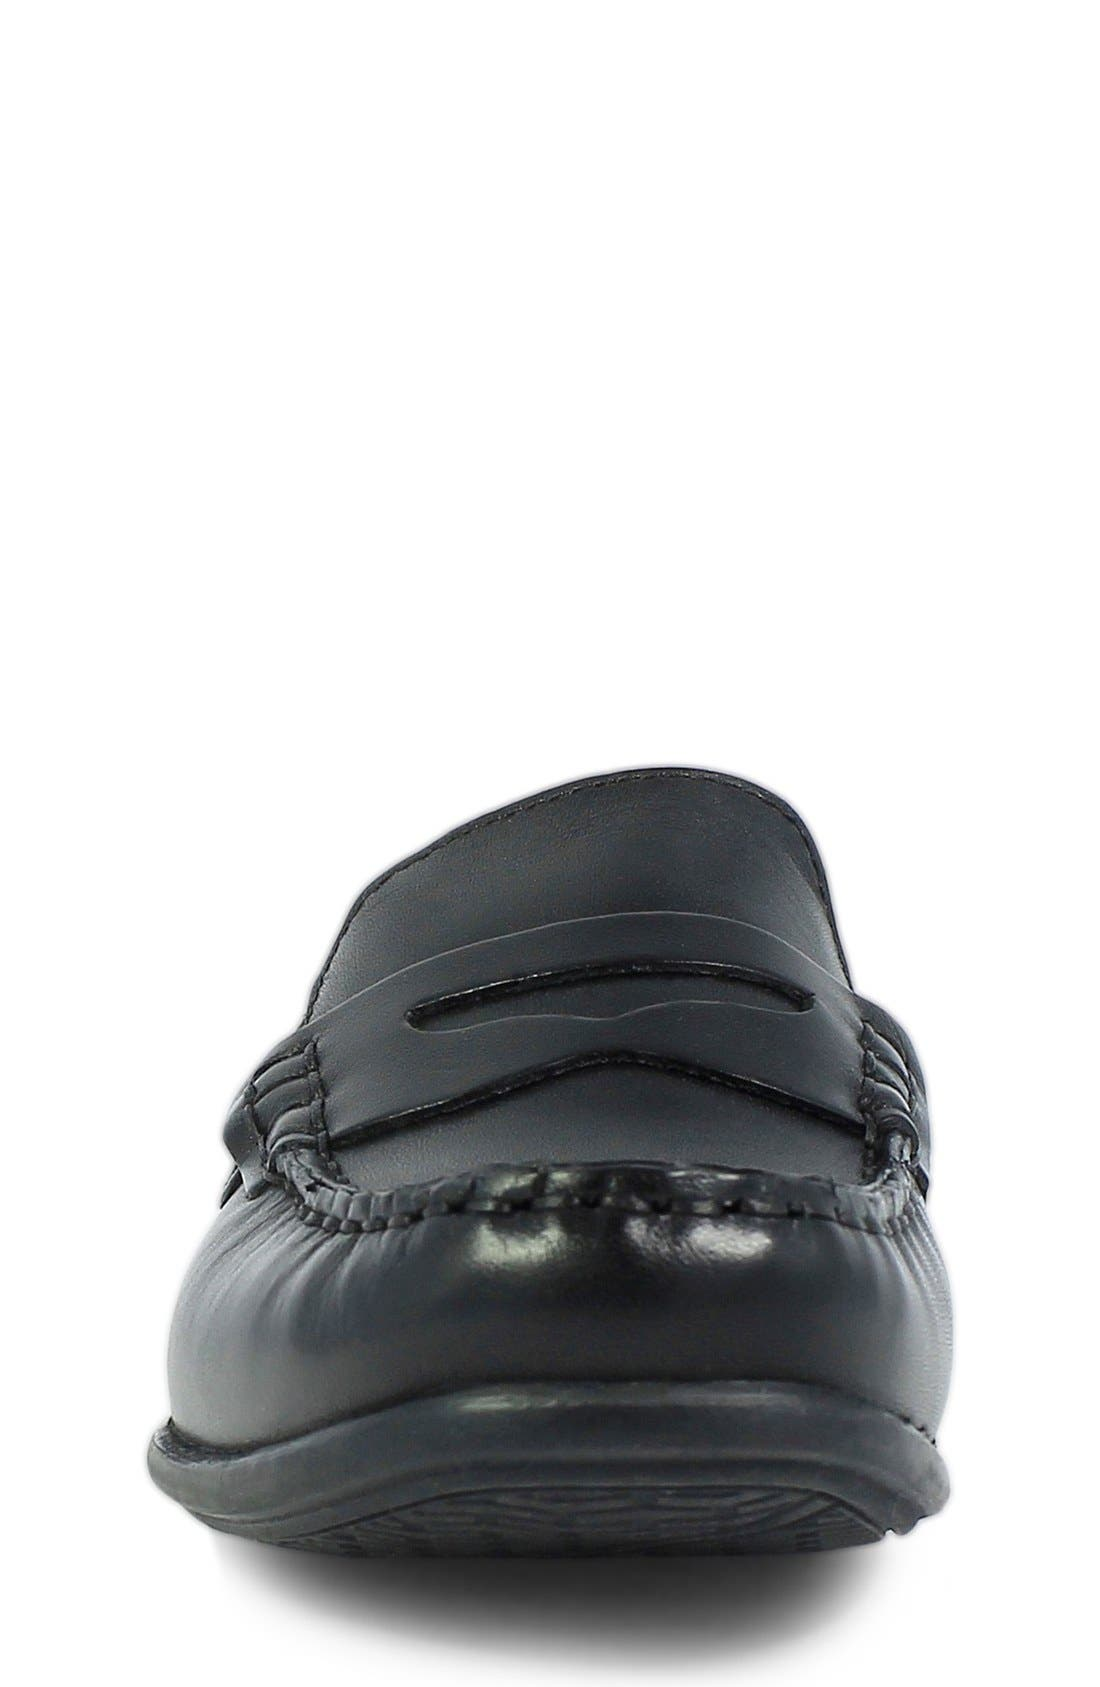 'Jasper - Driver Jr.' Loafer,                             Alternate thumbnail 5, color,                             BLACK LEATHER